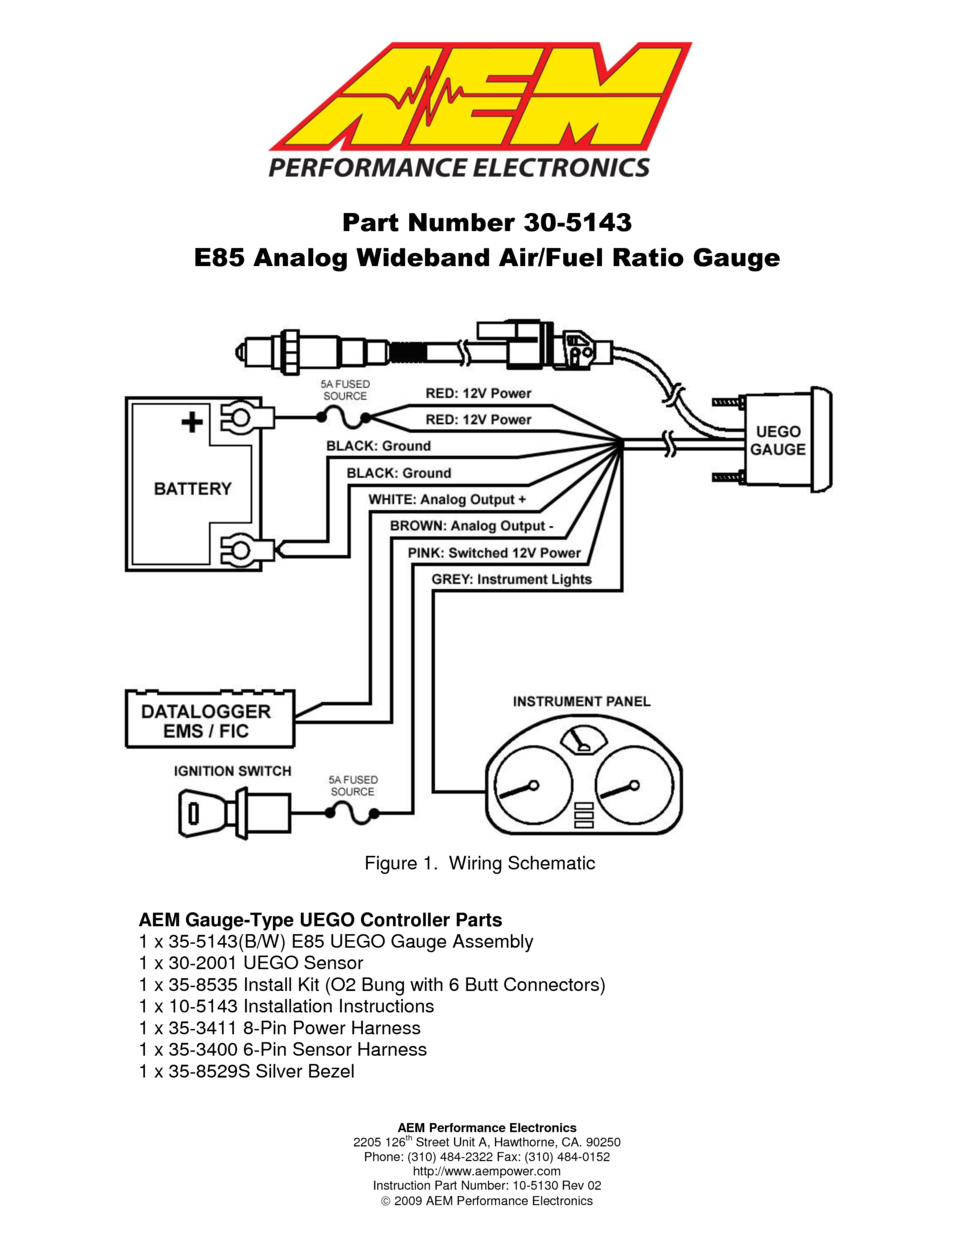 Autometer Gauges Wiring Diagram from schematron.org